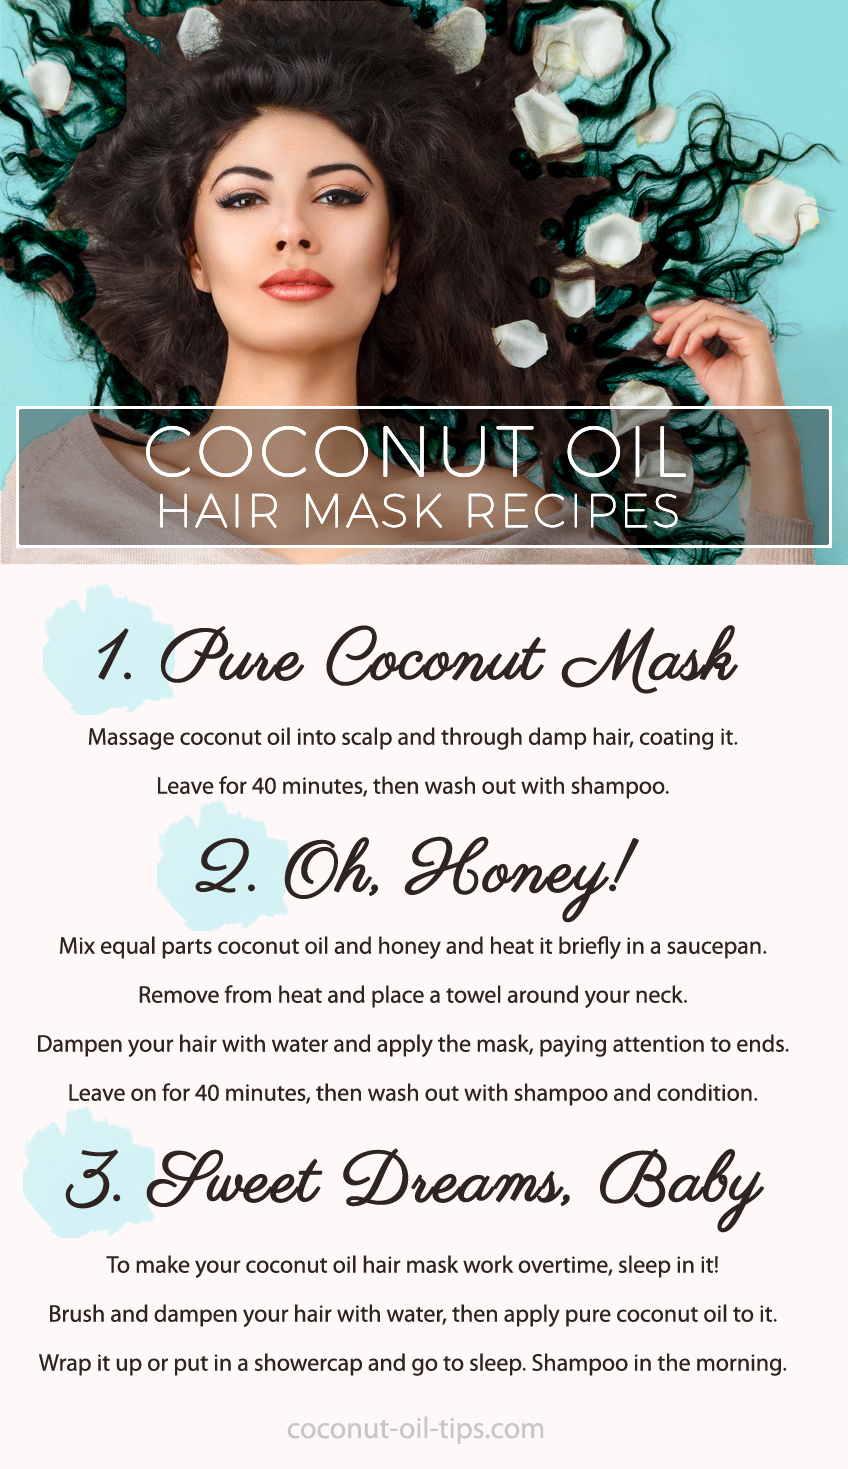 Coconut Oil Hair Mask Recipes Infographic